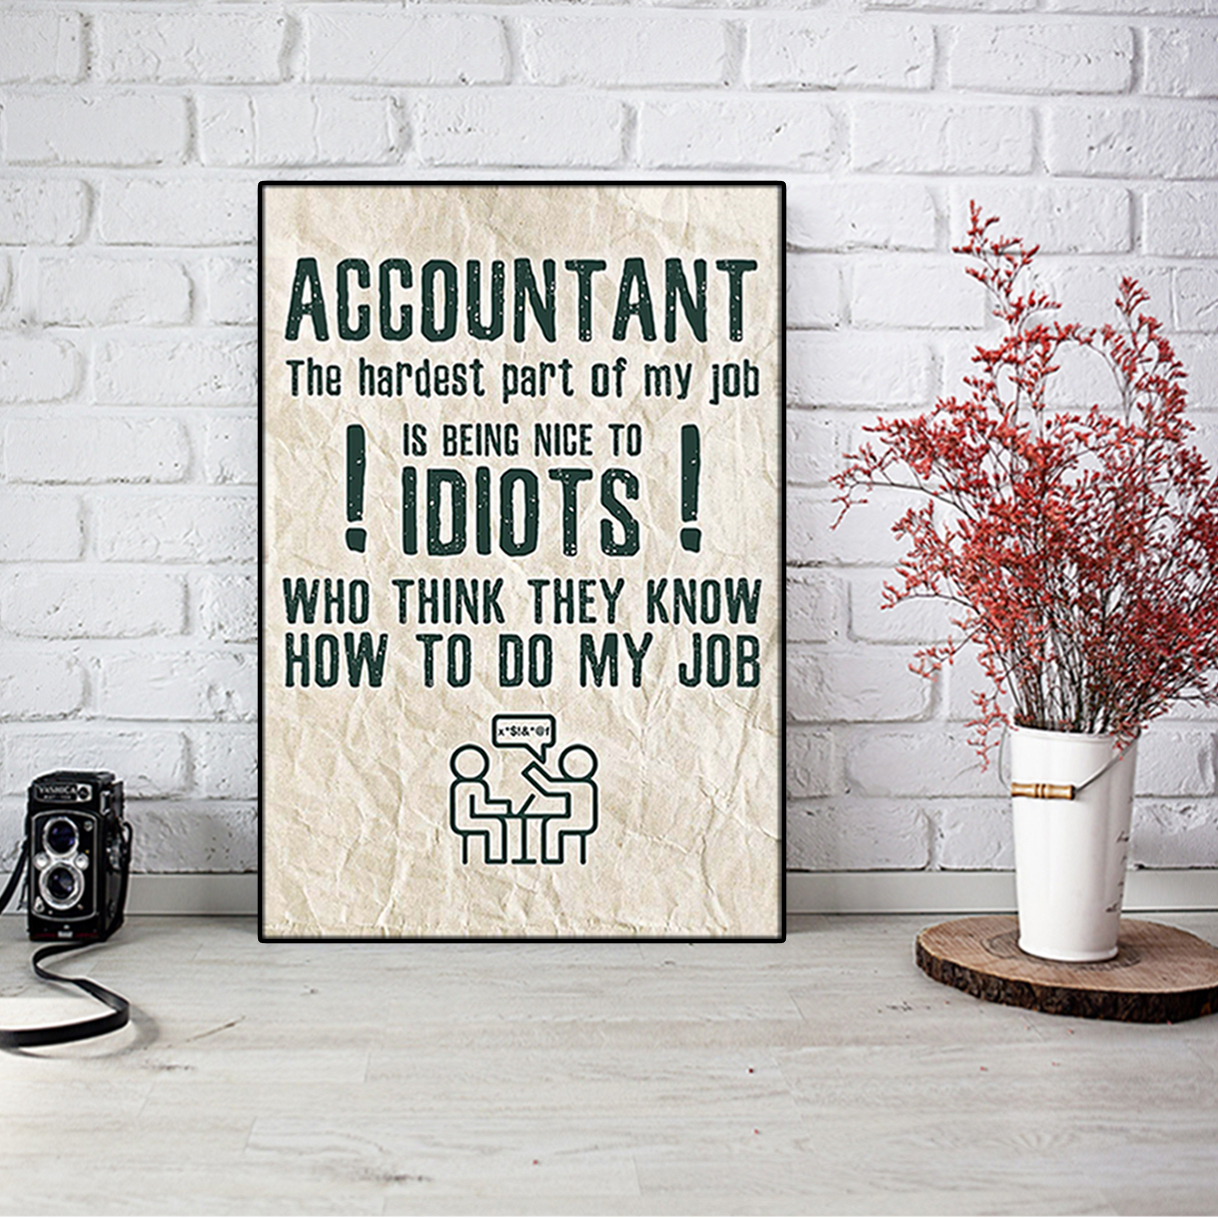 Accountant the hardest part of my job is being nice to idiots poster A2